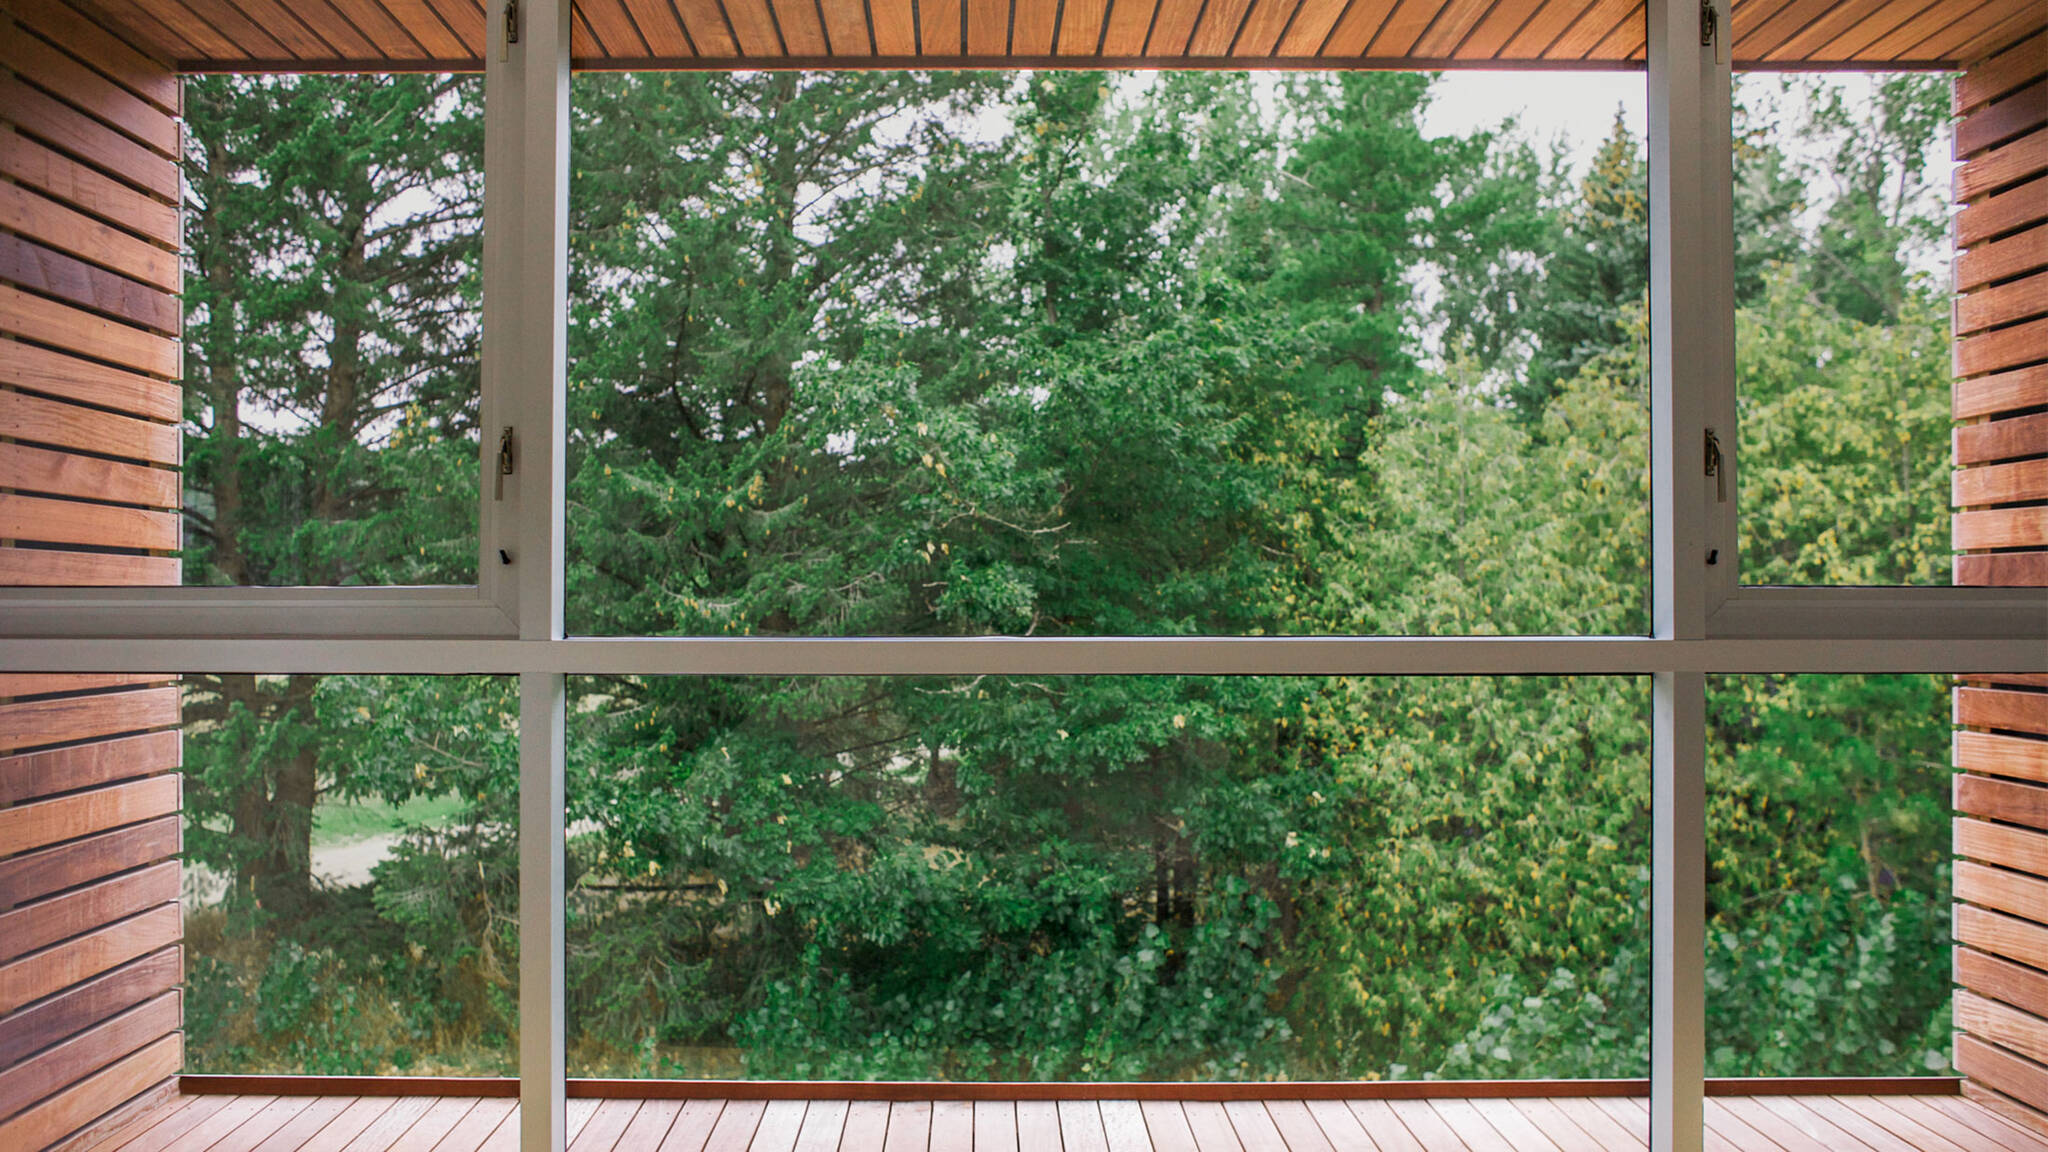 Framed window of the sustainable lake house project in Omena, Michigan designed by the architecture studio Danny Forster & Architecture